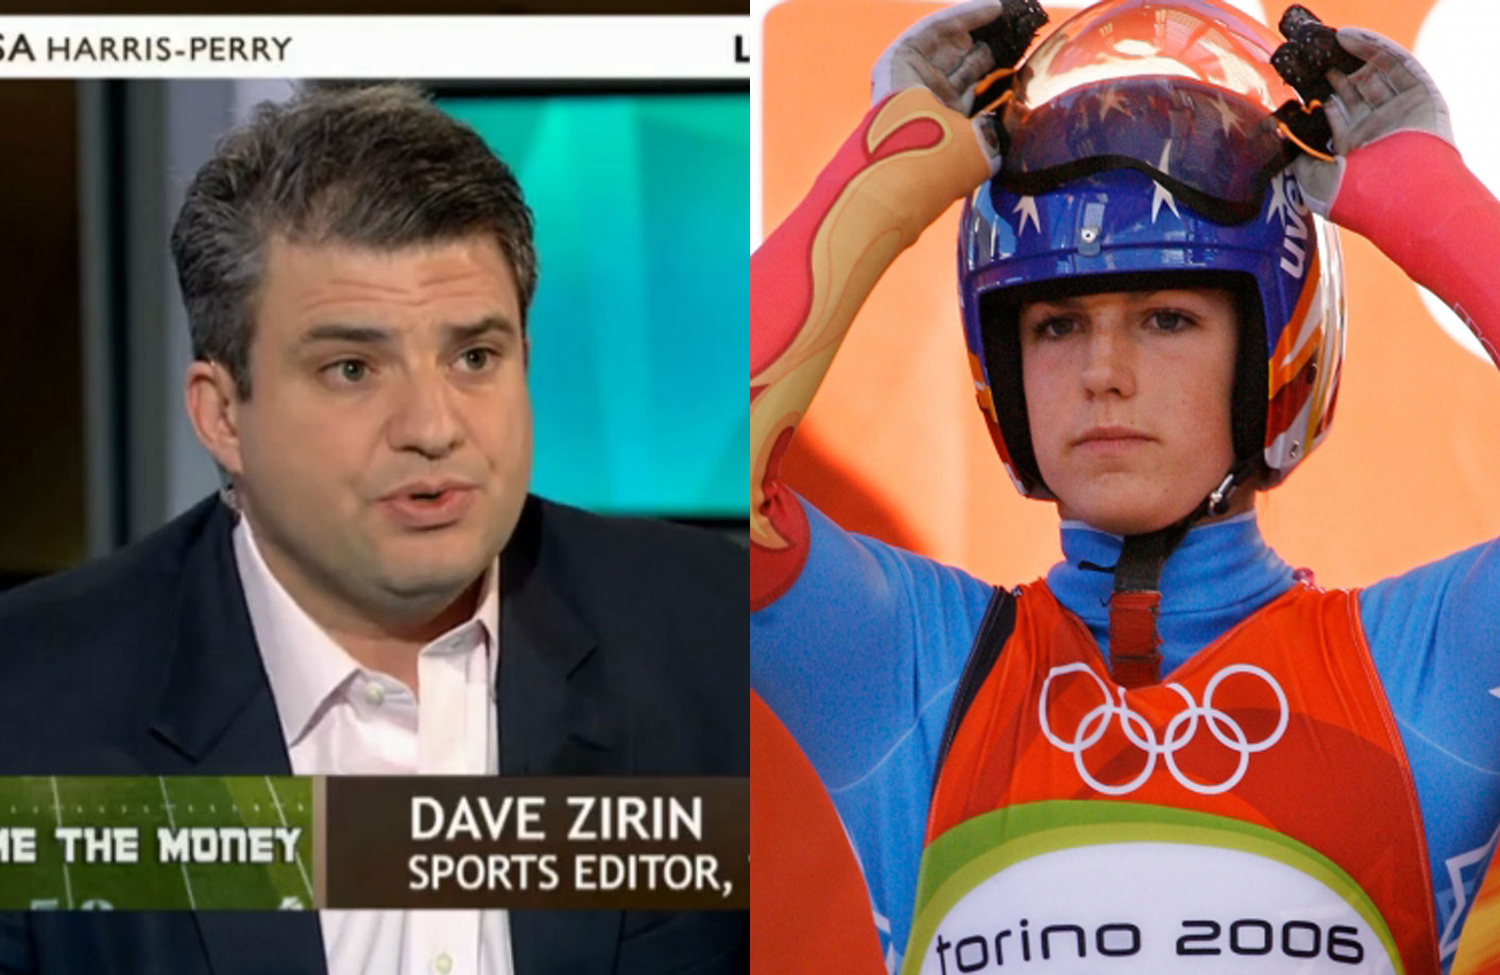 Dave-Zirin-and-Samantha-Retrosi